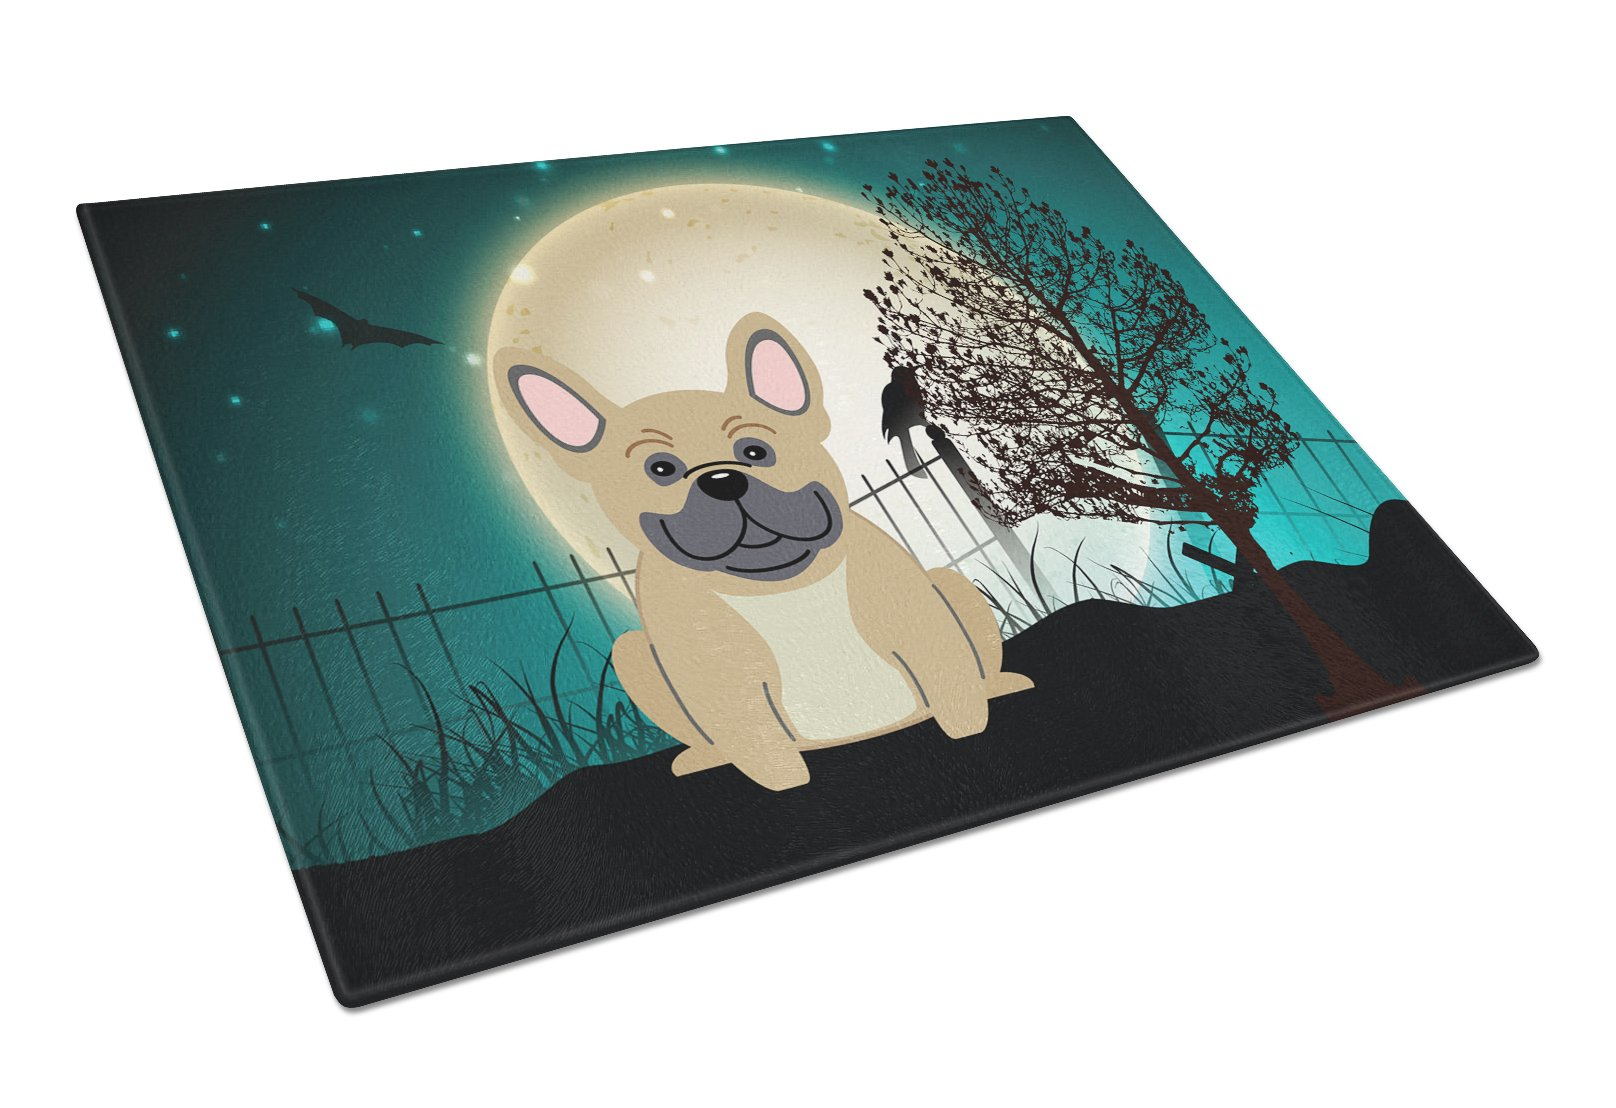 Halloween Scary French Bulldog Cream Glass Cutting Board Large BB2200LCB by Caroline's Treasures